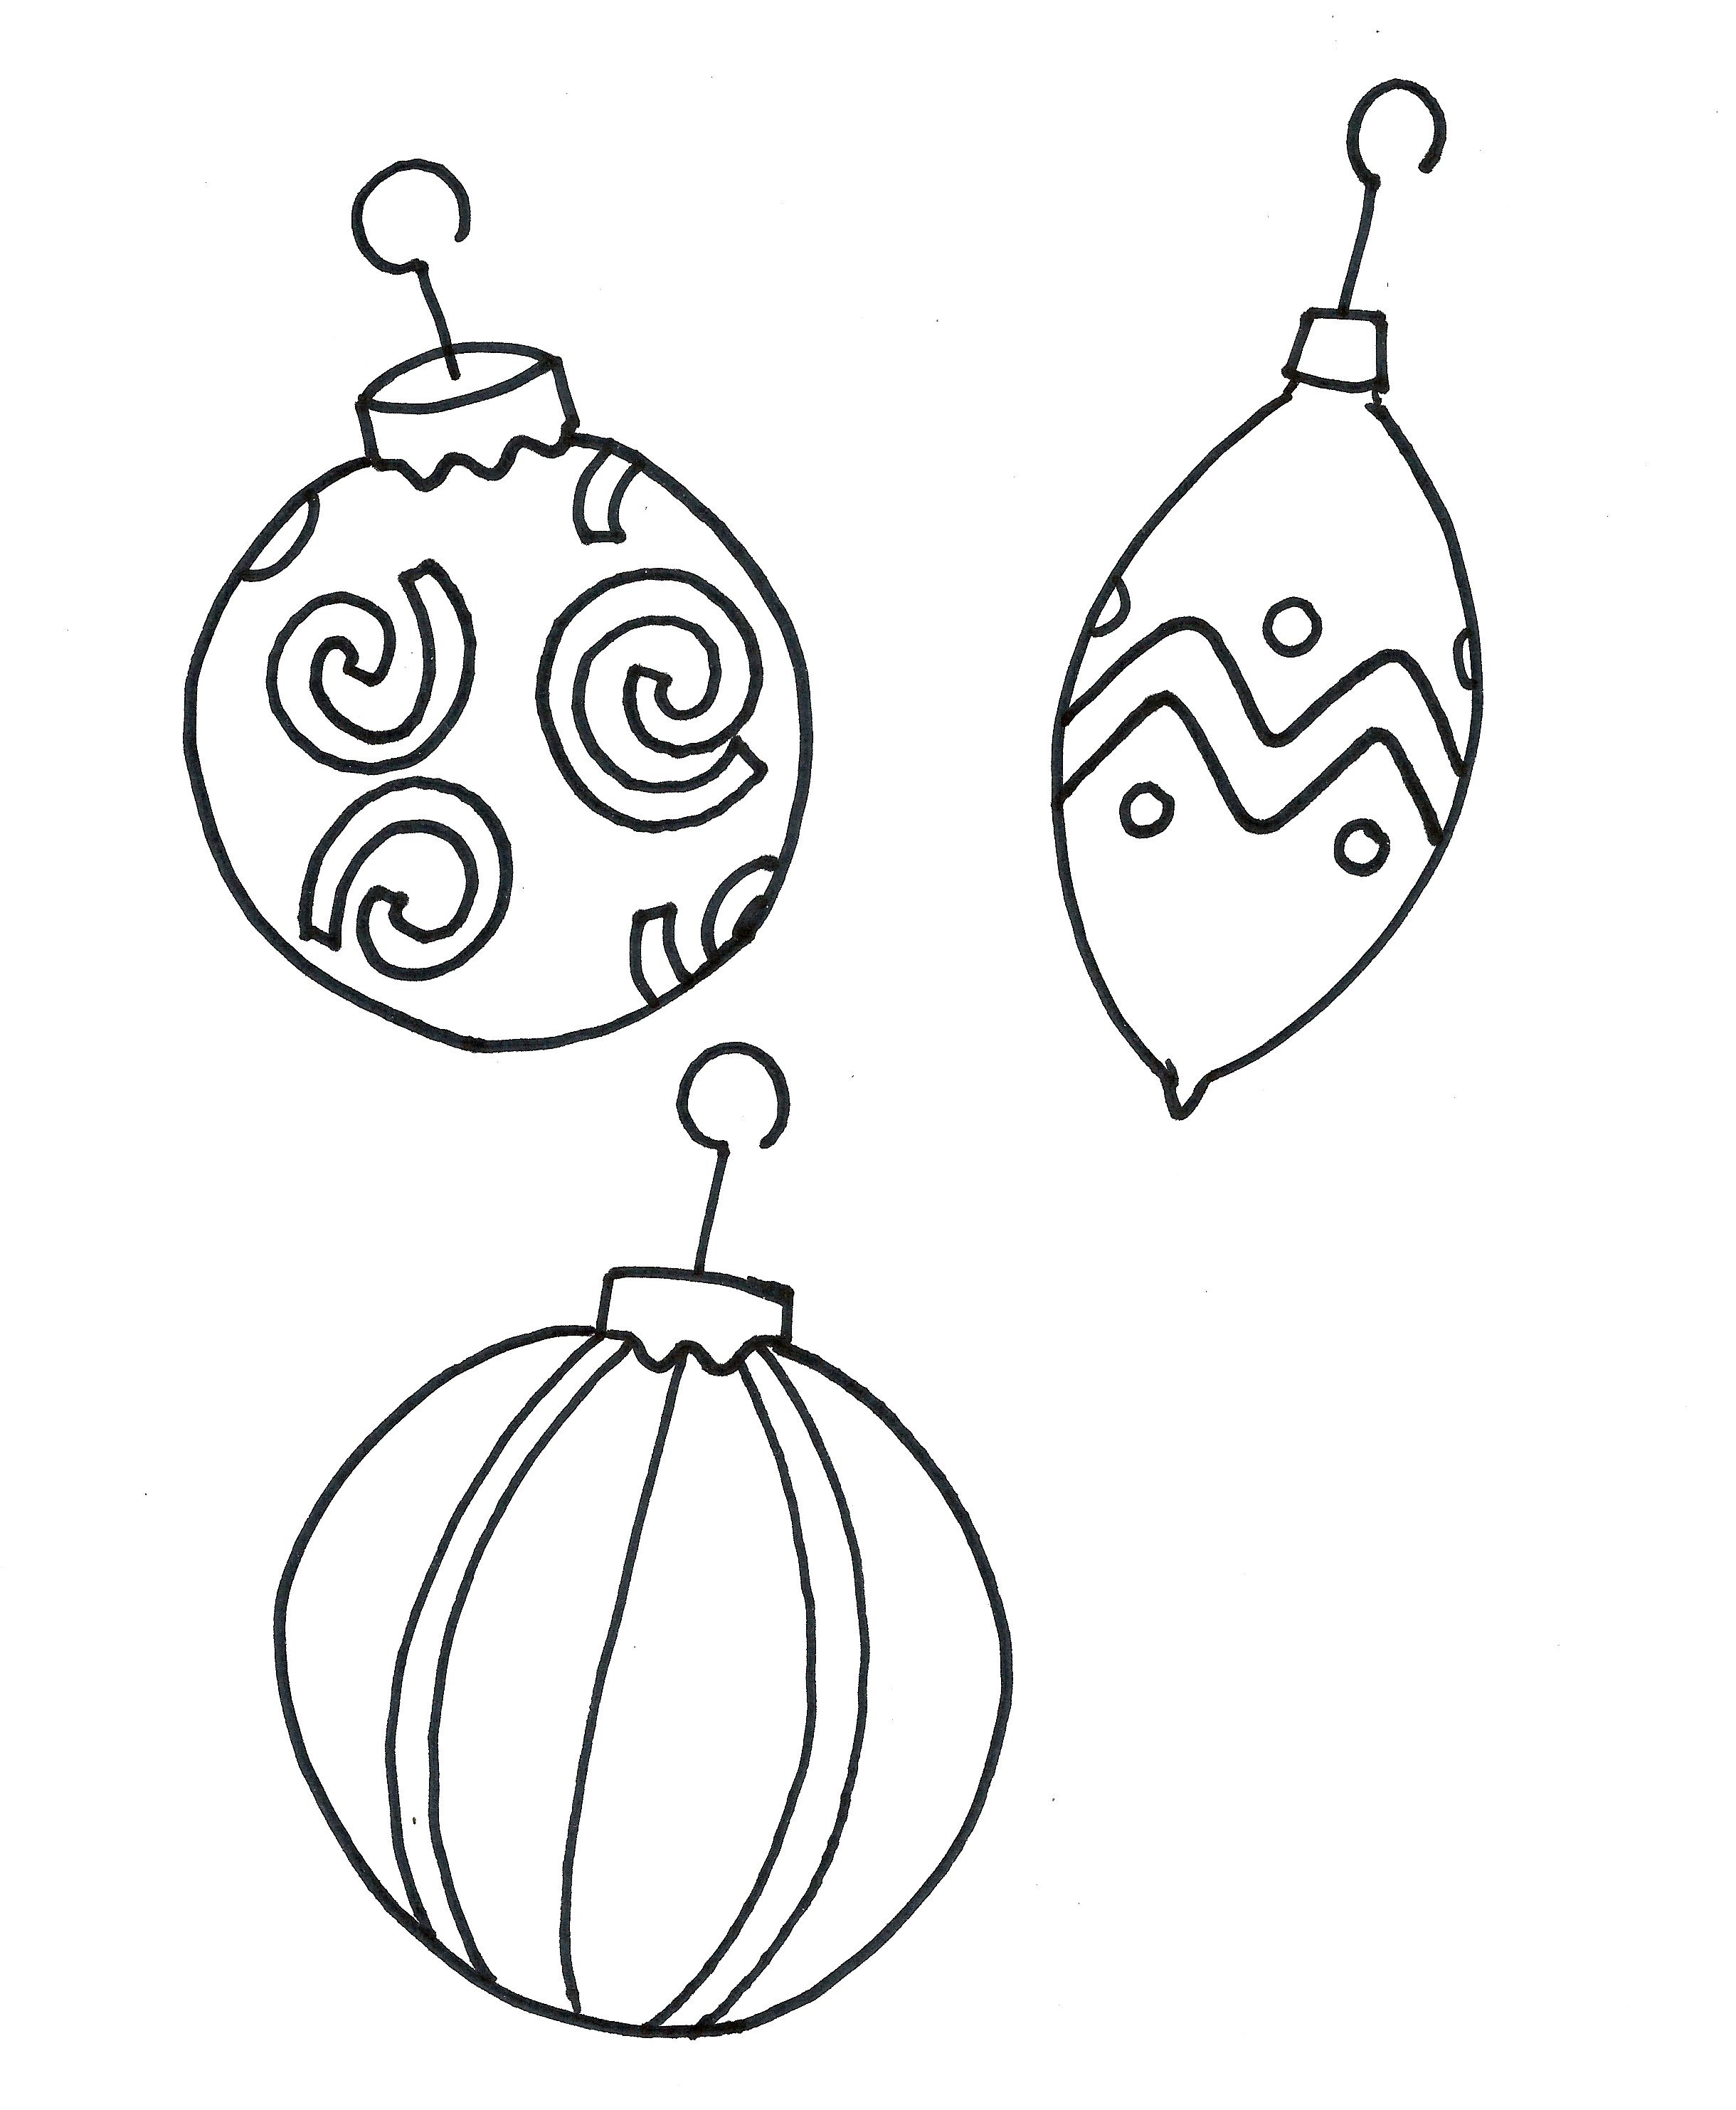 2440x2965 Quickly Ornament Coloring Pages To Print Trend